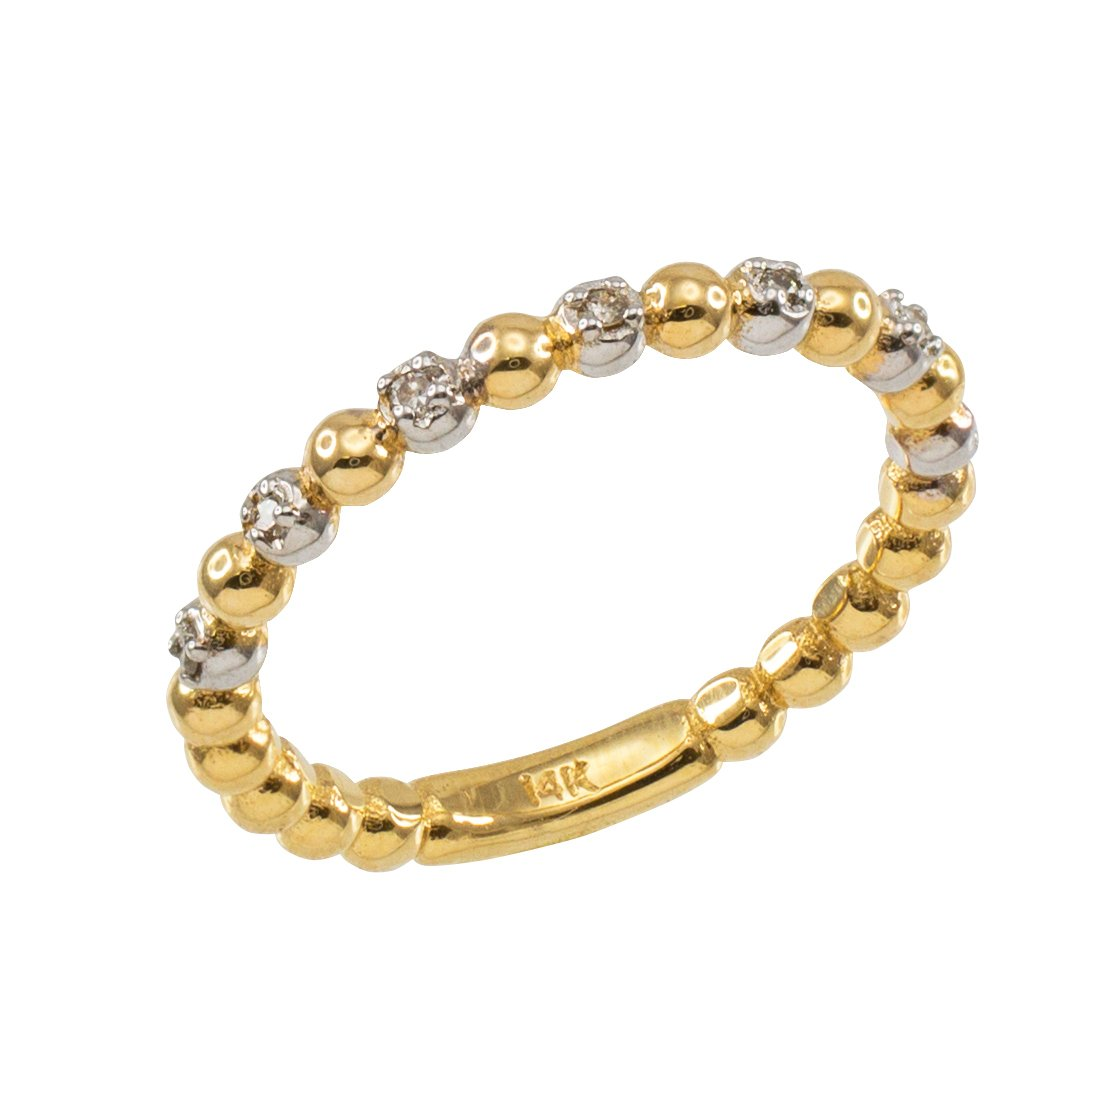 Fine 10k Two-Tone White and Yellow Gold Beaded Stackable Ring with Natural Diamonds (Size 4)